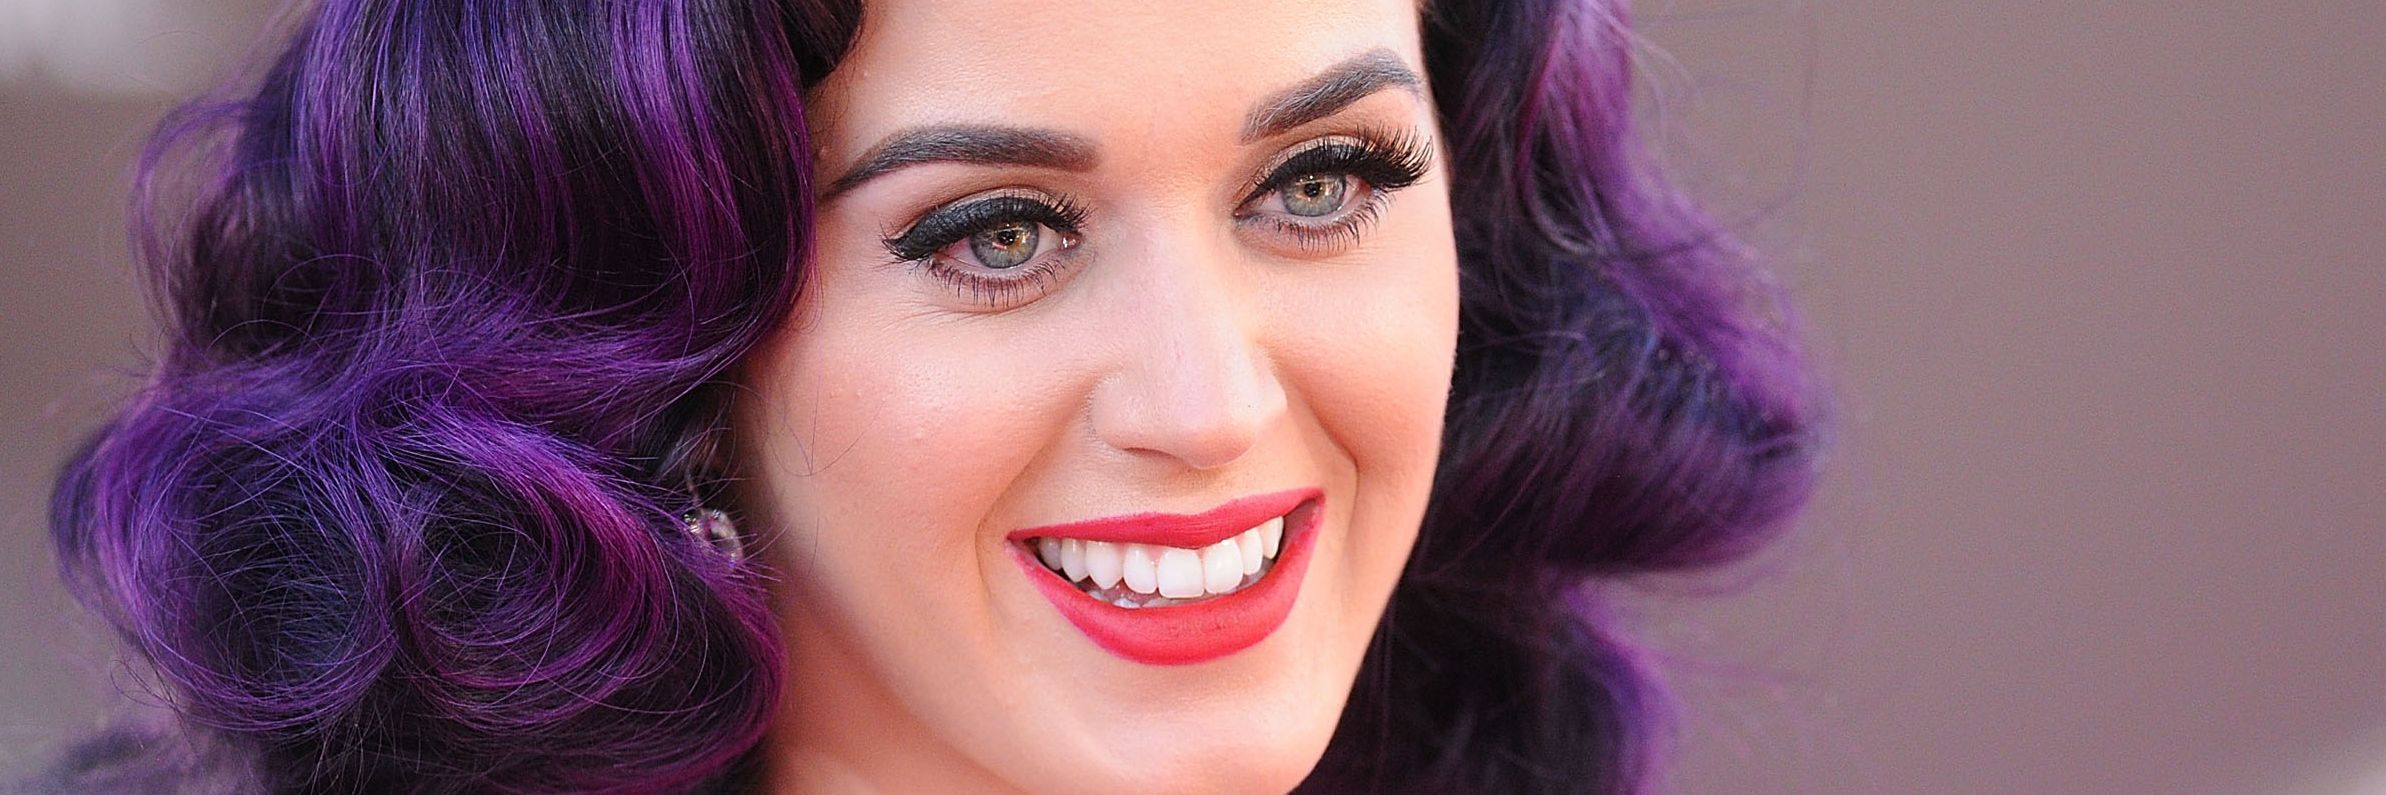 13 Secrets Nobody Tells You About Dyeing Your Hair A Crazy Color - Mtv